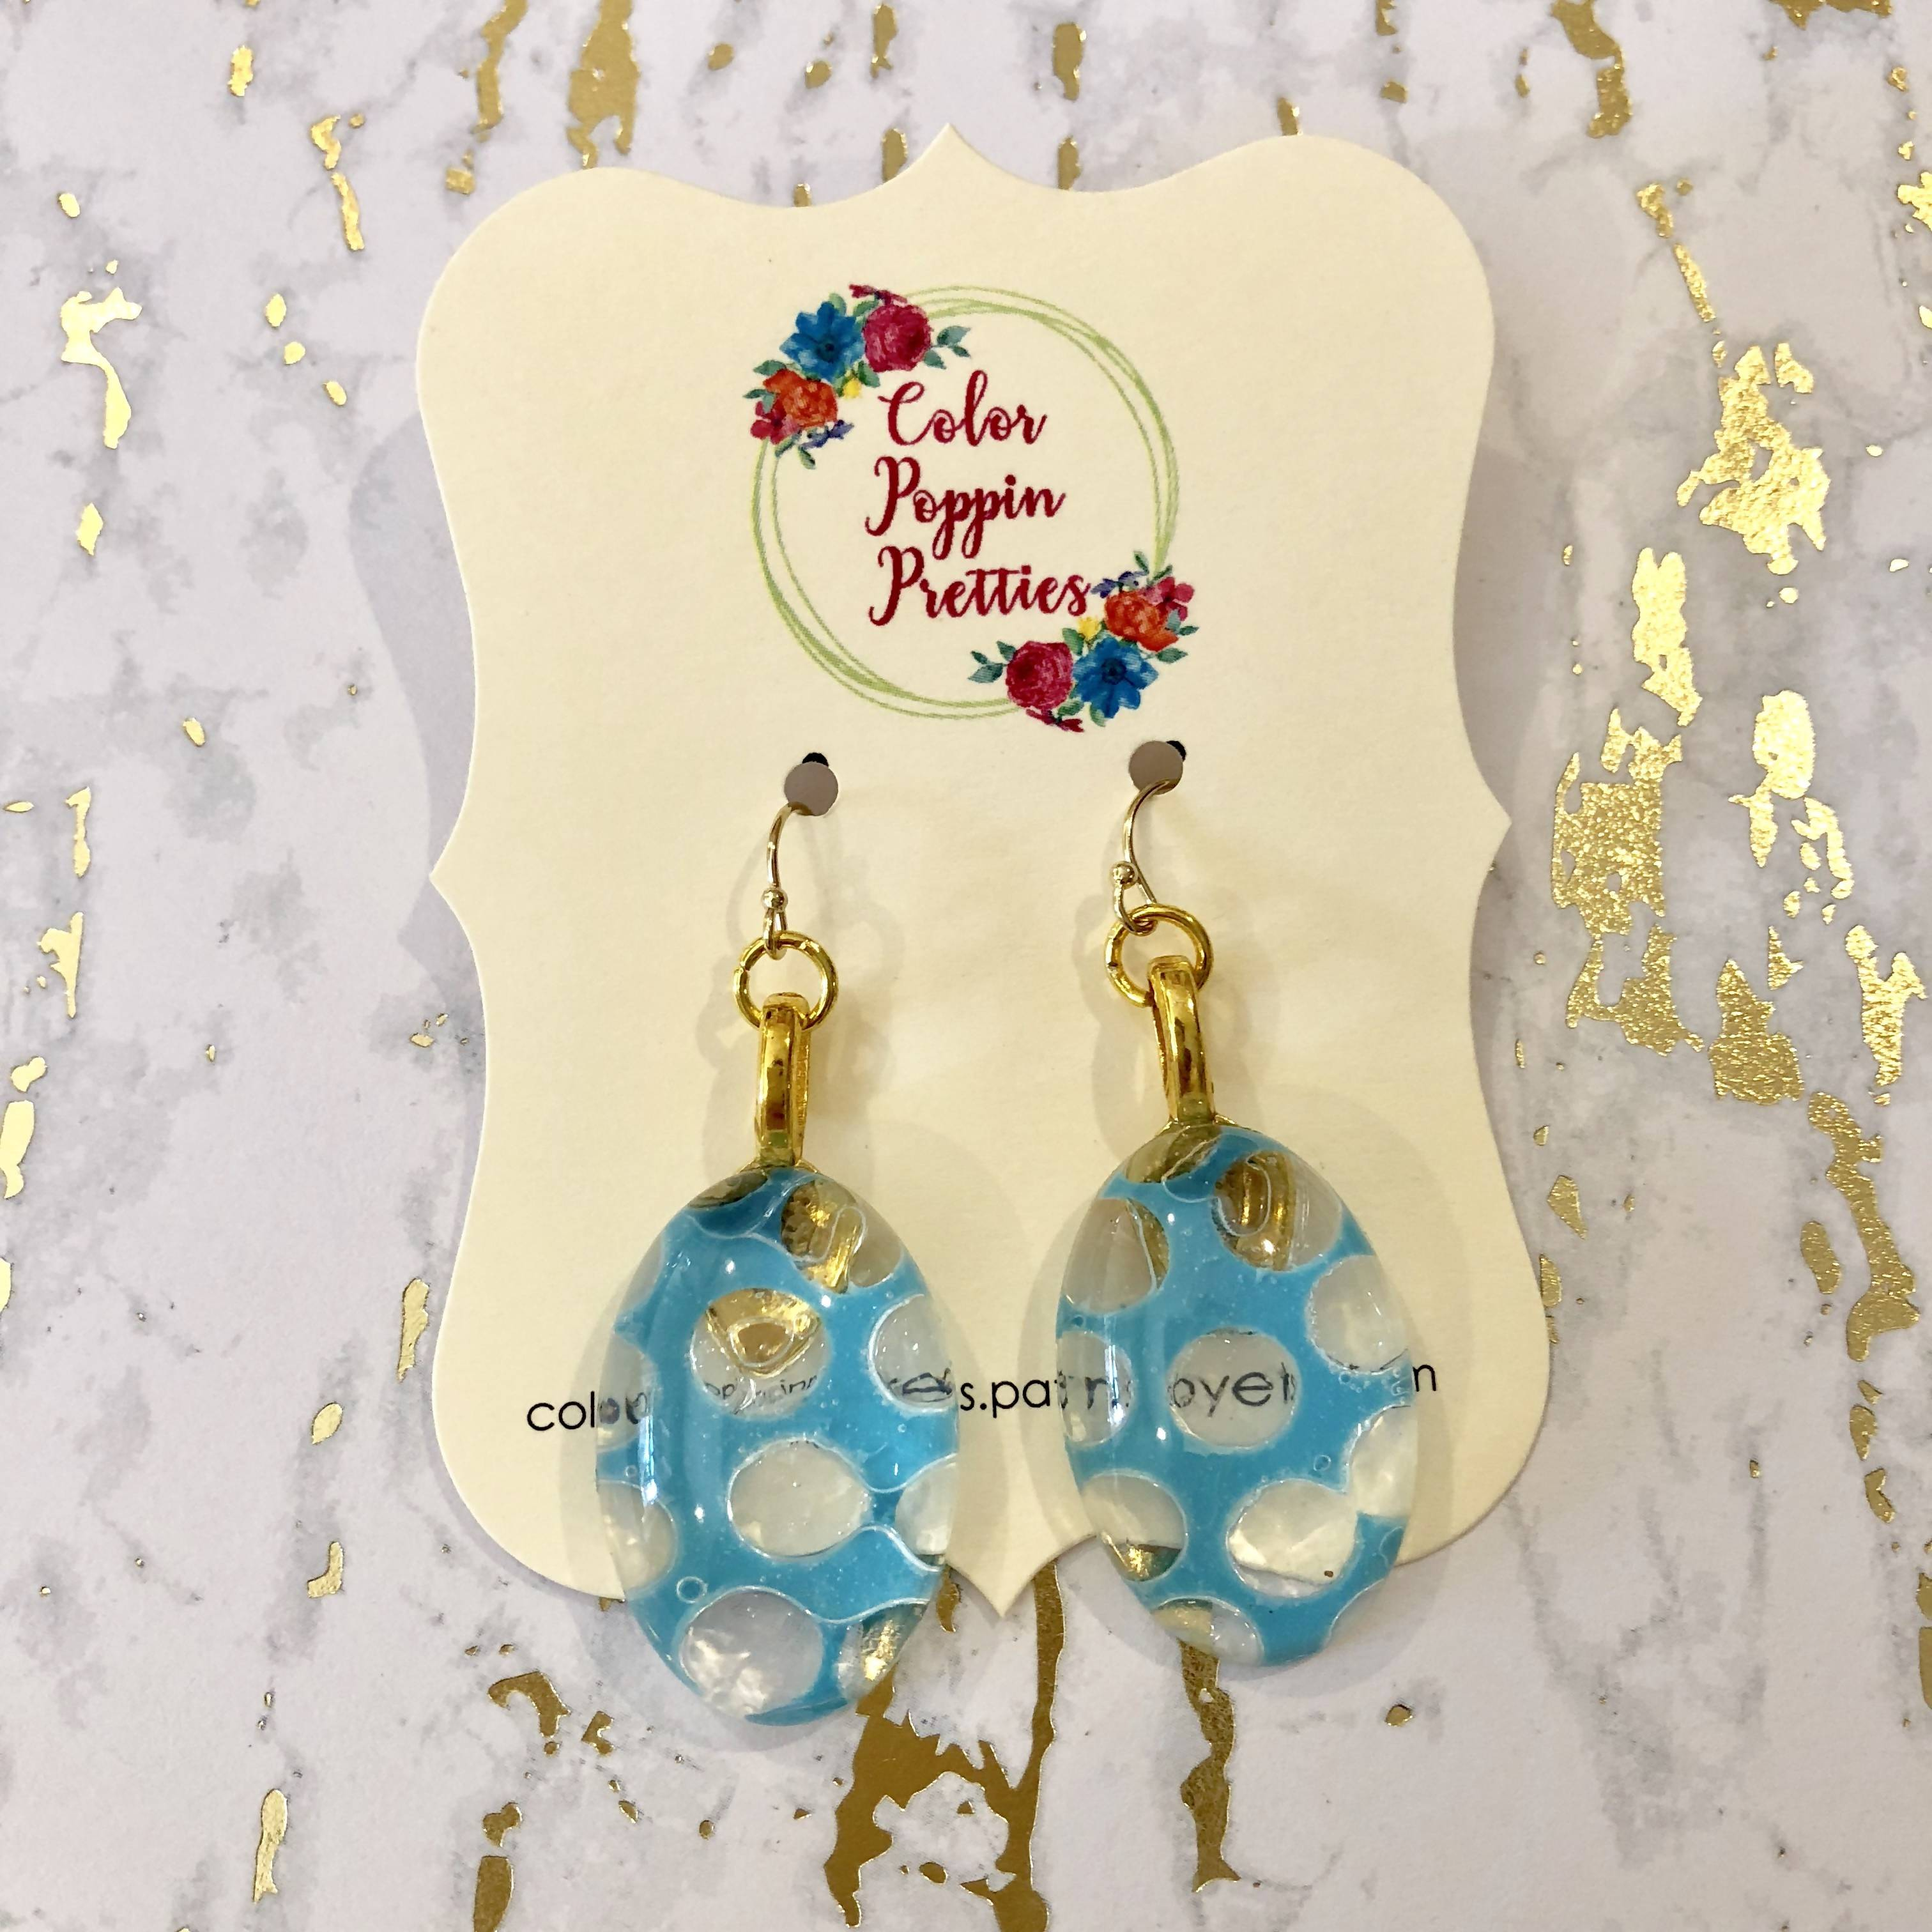 Oval earrings - resin and blue polka dots with 14K gold filled hooks